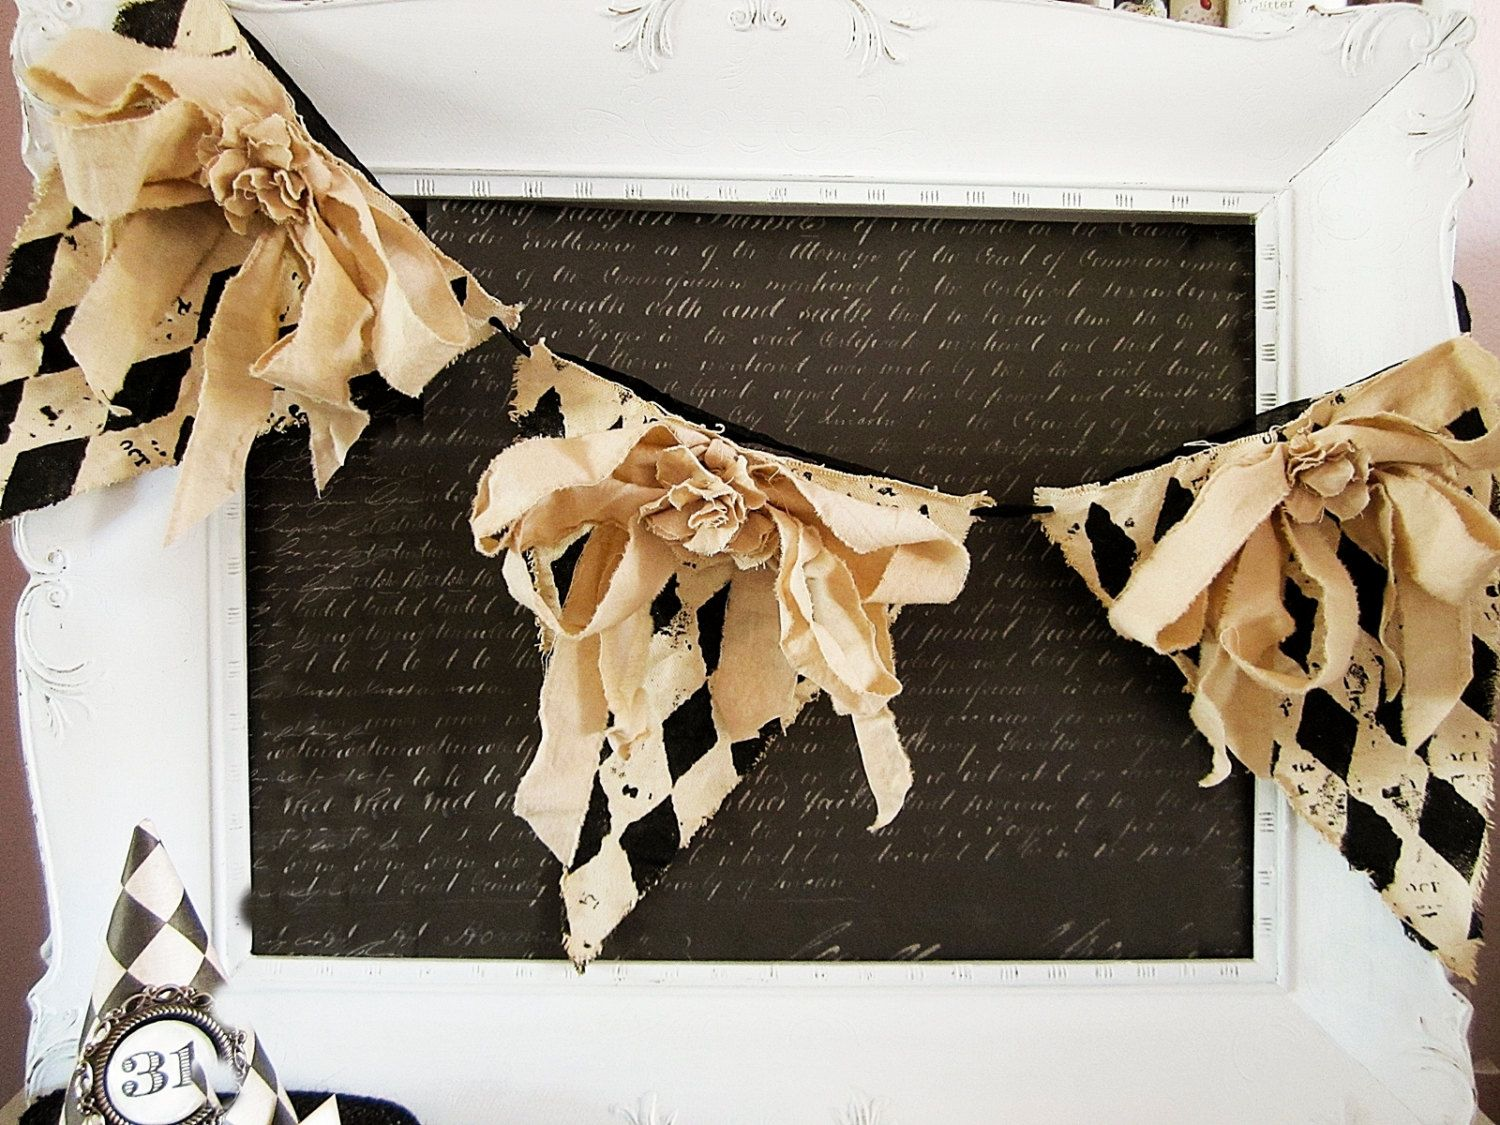 Halloween Decor, Halloween Banner, Vintage Halloween Decor, Halloween Garland, Rustic Chic Halloween, Shabby Chic Halloween, Black and Tan by kathyjacobson on Etsy https://www.etsy.com/listing/199629460/halloween-decor-halloween-banner-vintage